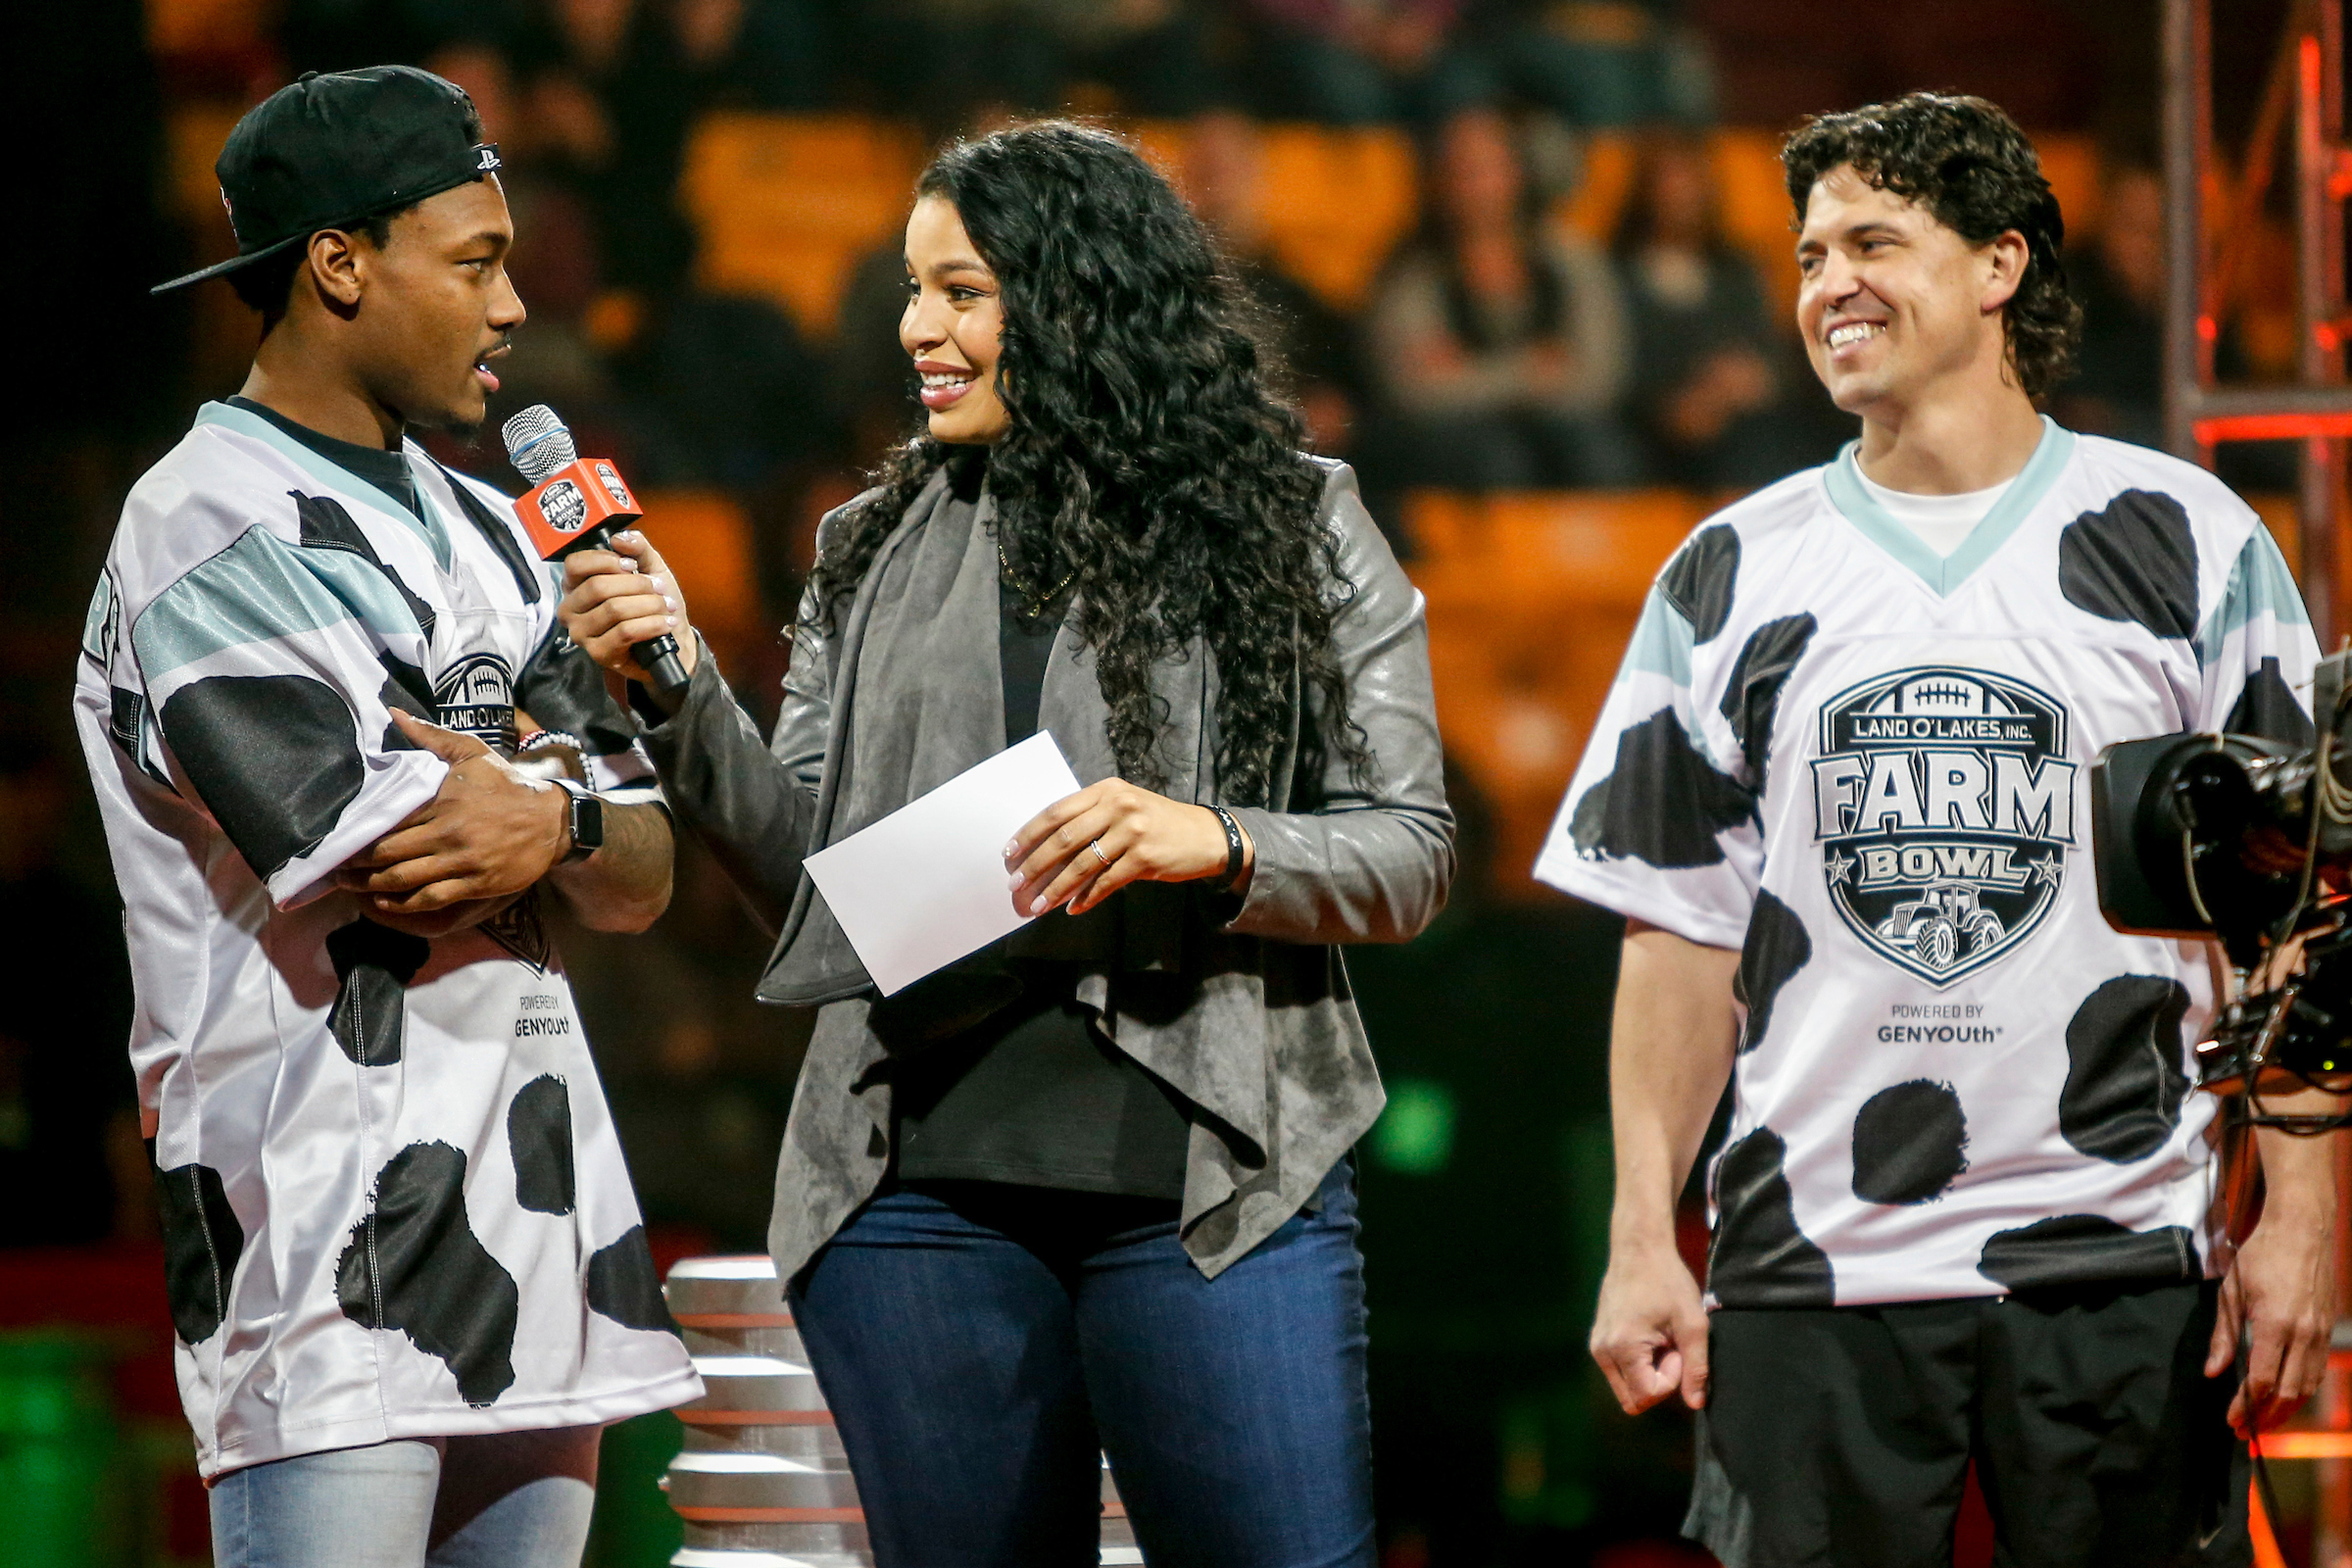 Jordin Sparks interviews Minnesota Vikings wide receiver Stefon Diggs and farmer JJ Nunes during the Land O'Lakes Farm Bowl on  Thursday, Feb. 1, 2018 in Minneapolis. (Bruce Kluckhohn/AP Images for Land O'Lakes)